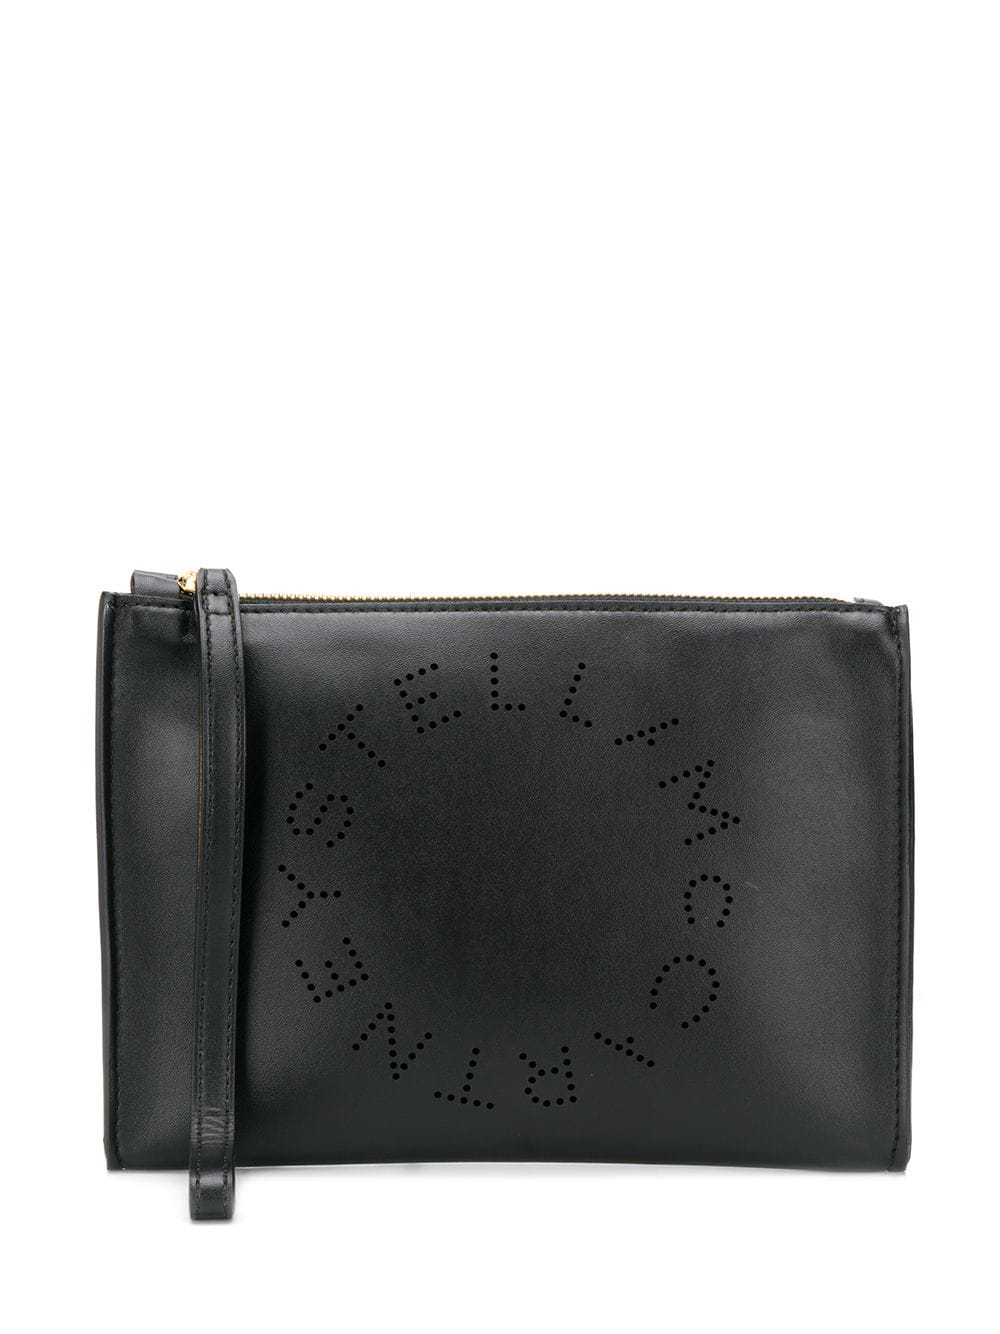 black eco-leather zipped clutch STELLA MC CARTNEY |  | 502892-W85421000